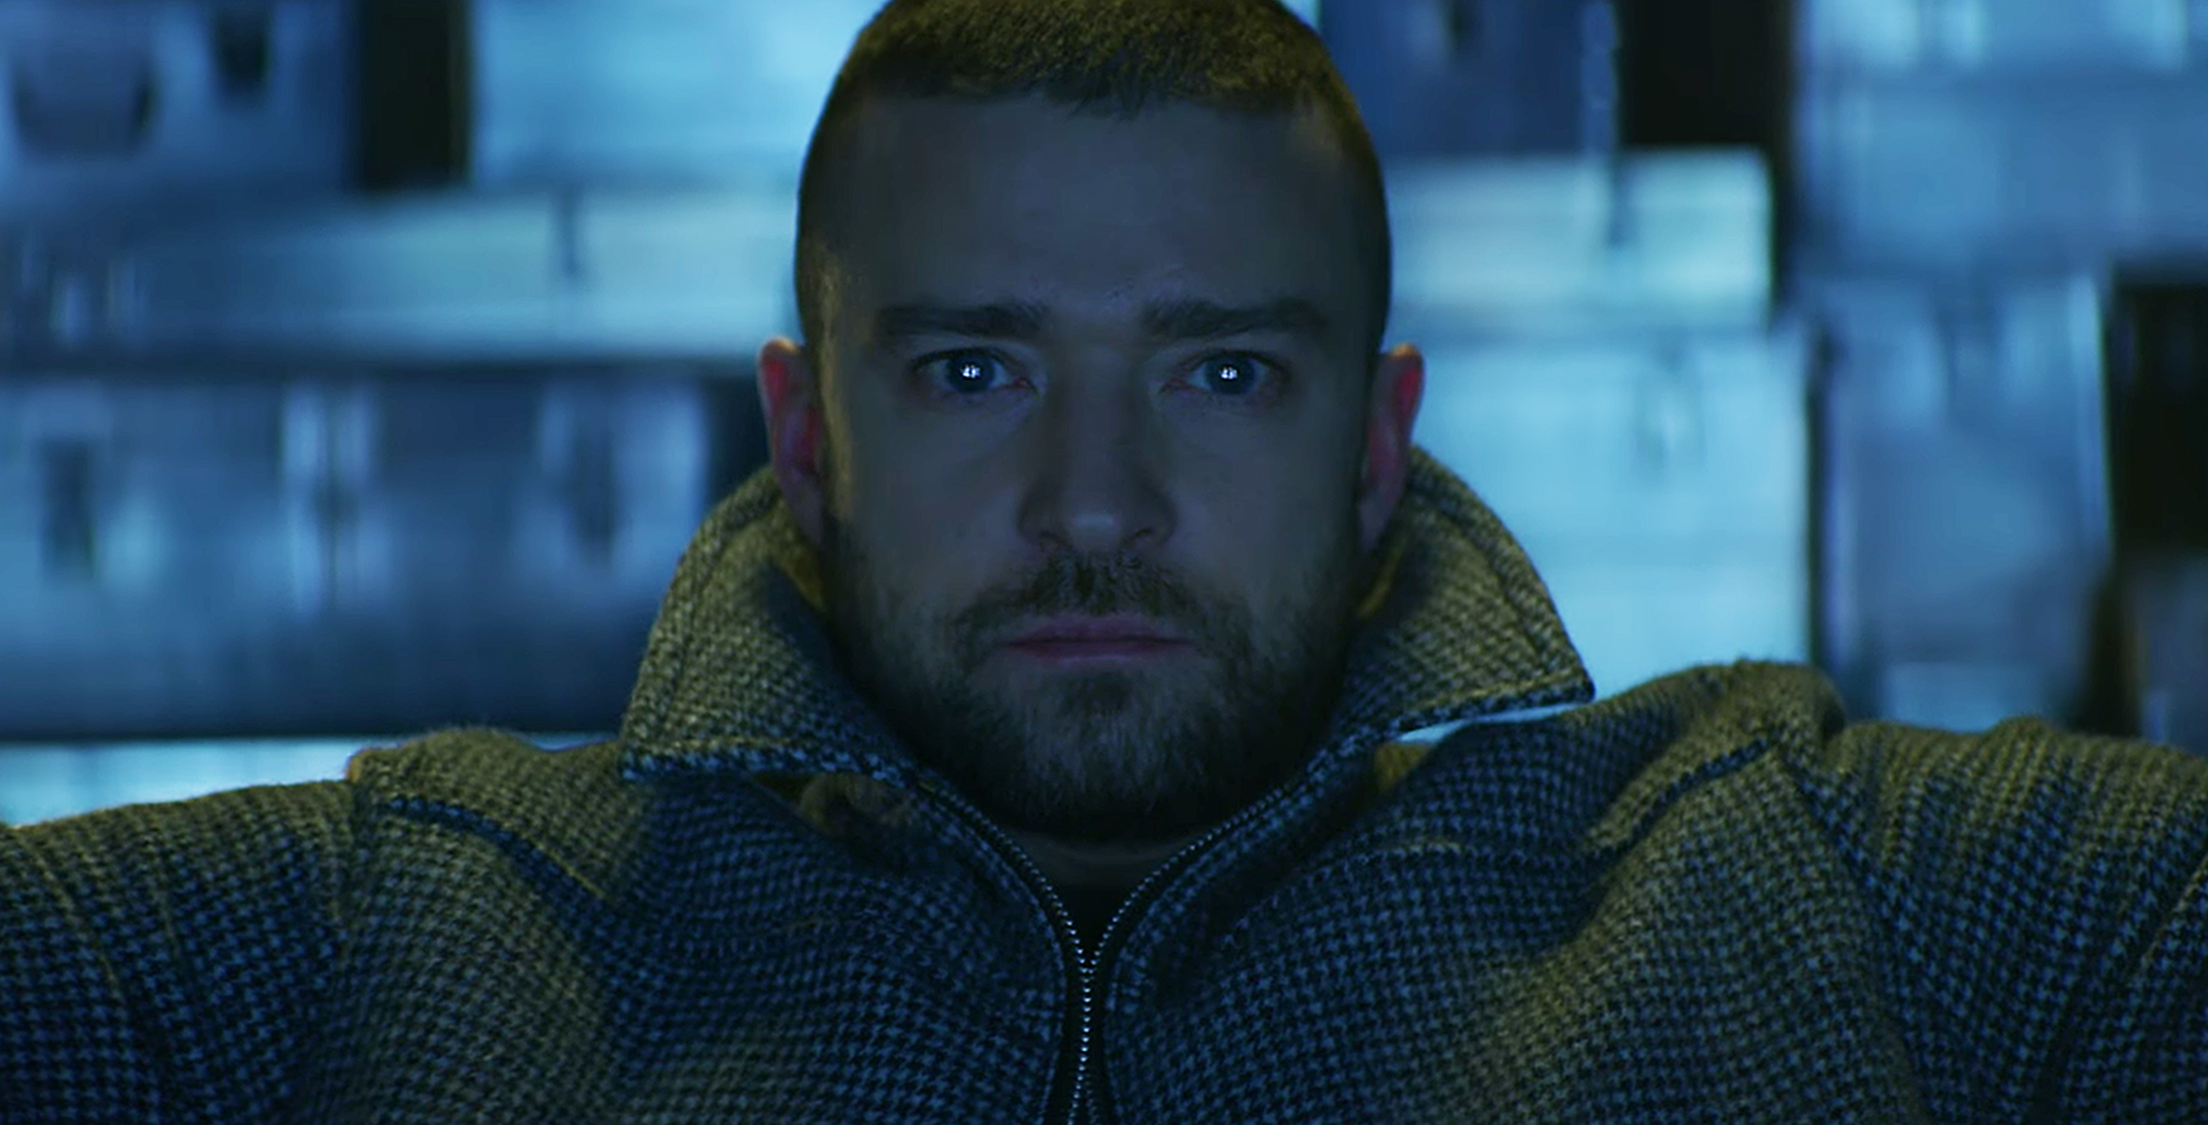 36 thoughts I had while watching Justin Timberlake's new video